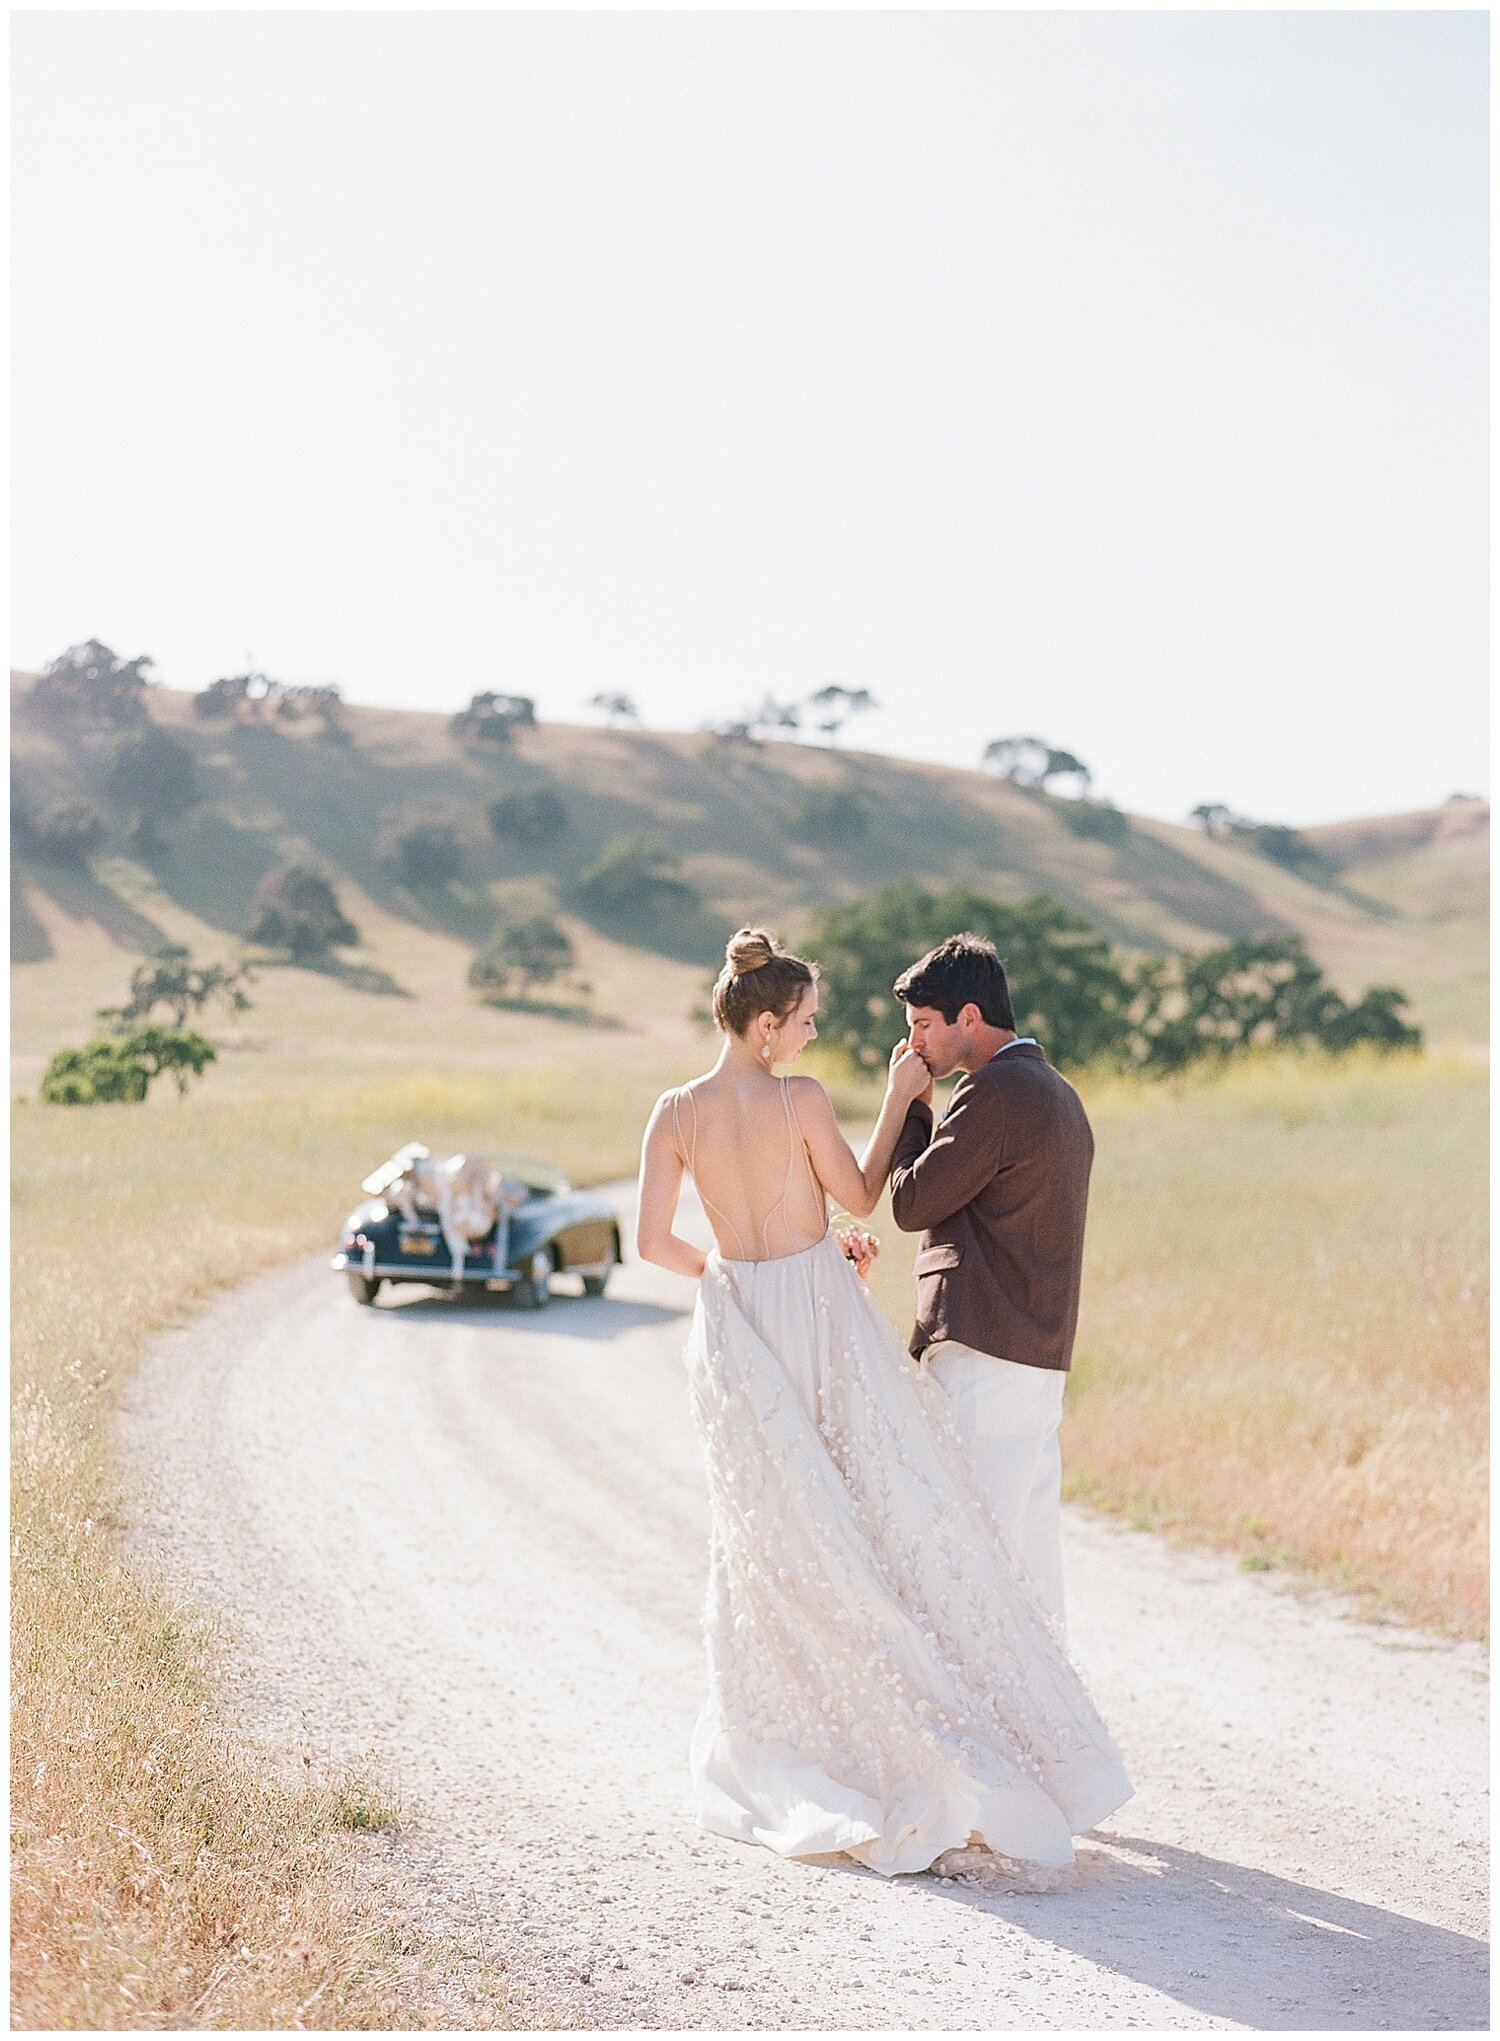 Janine_Licare_Photography_San_Francisco_Kestrel_Park_Santa_Ynez_Sunstone_Villa_Winer_Wedding_Photographer_Meadowood_Napa_Valley_Sonoma_0072.jpg